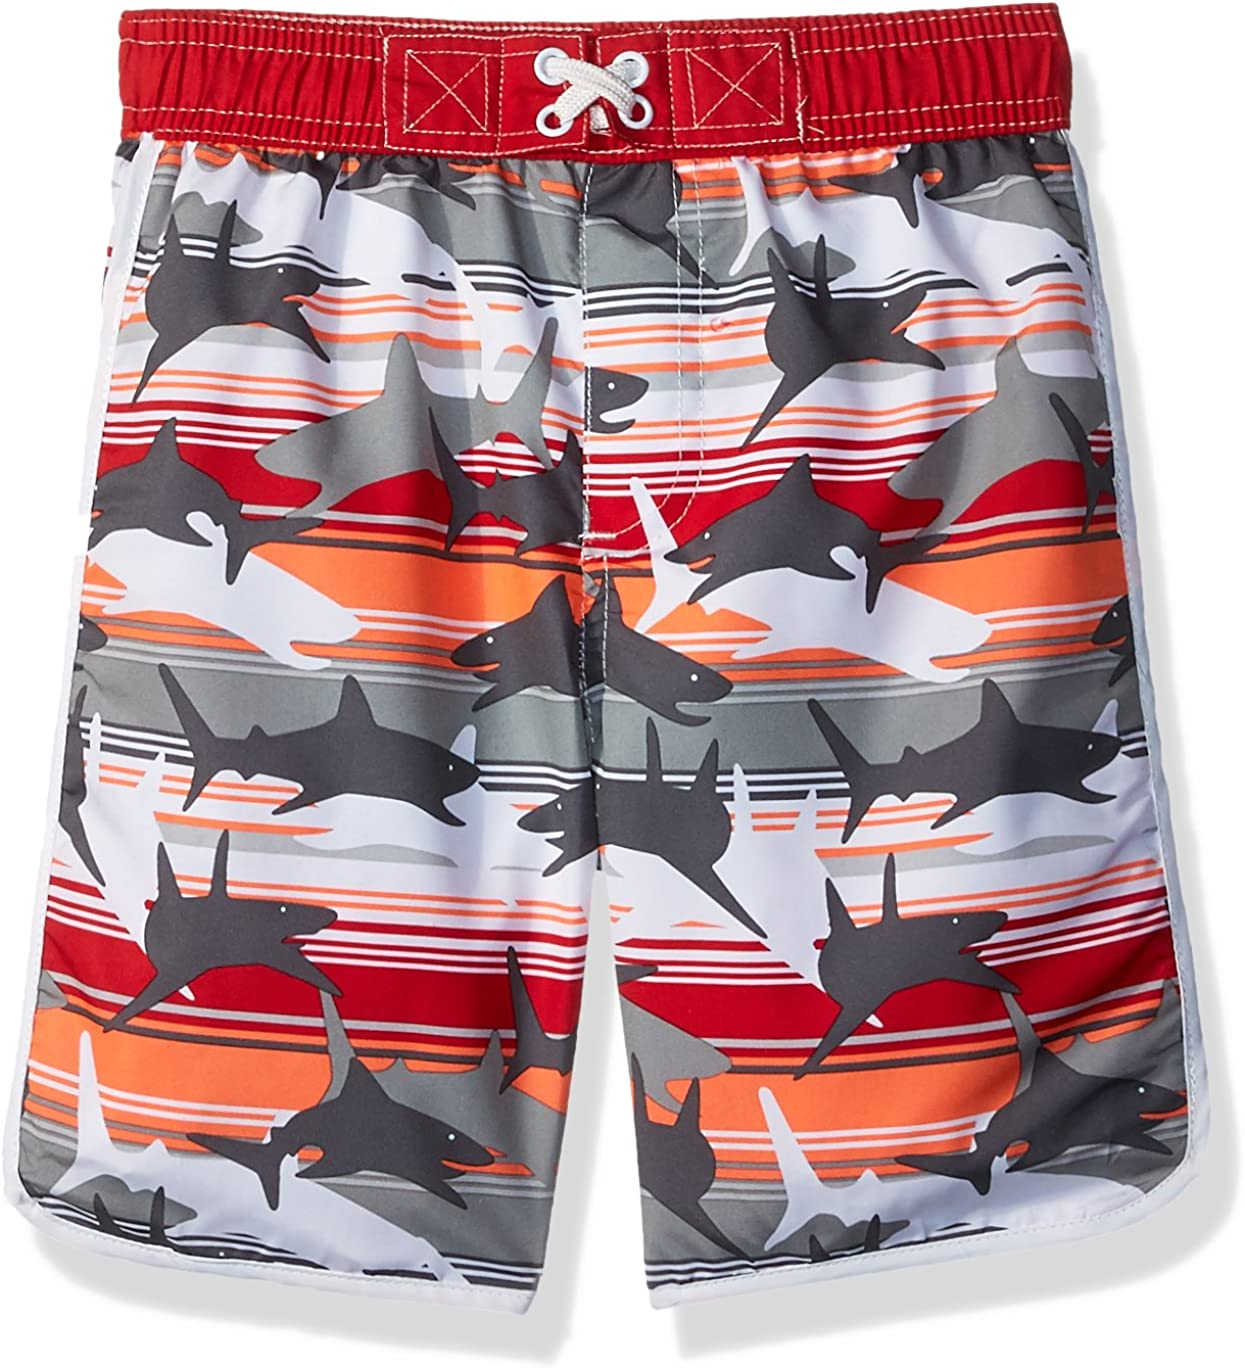 Wippette Boys Toddler Quick Dry Swim Trunk